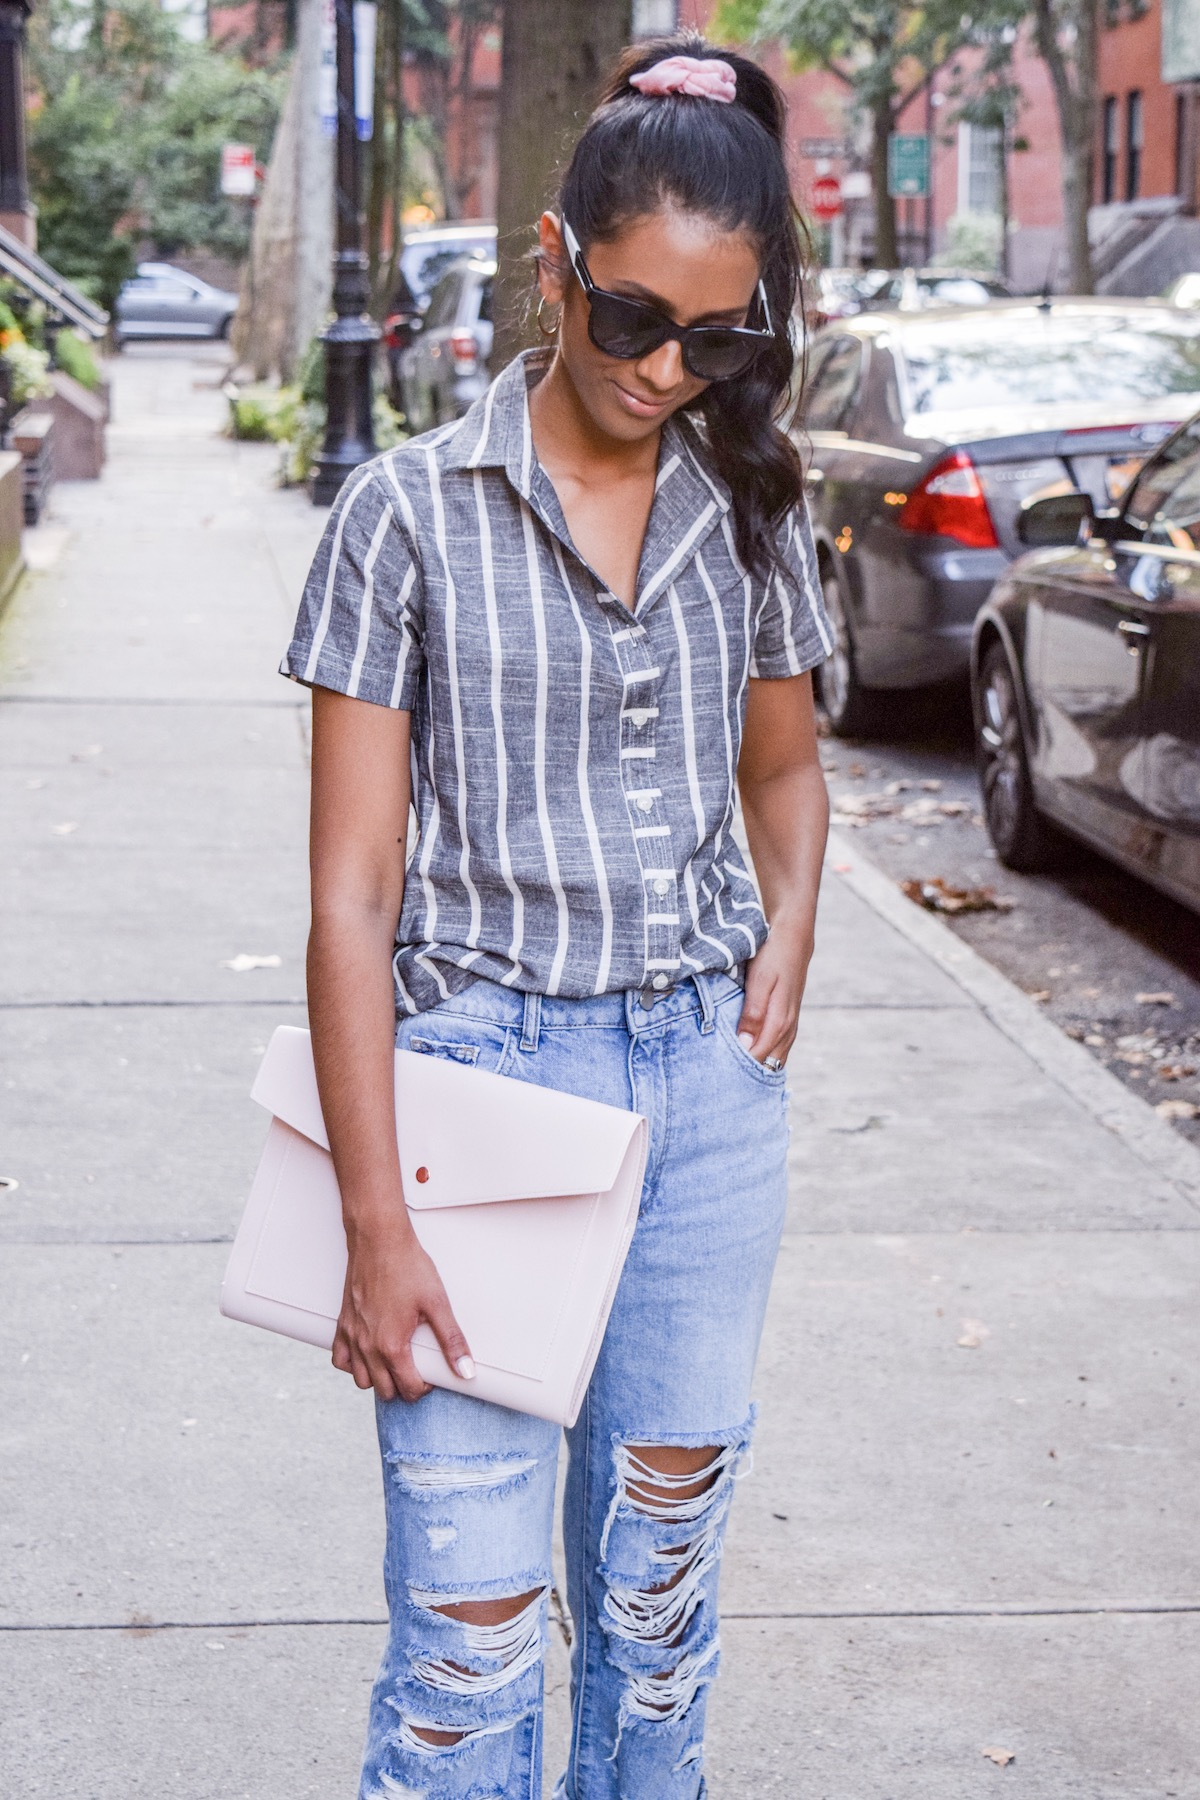 Distressed denim outfit // A Week Of Conscious Trend-Forward Outfits With Sabrina Ramkhelawan From Flaunt Your Fancy on The Good Trade